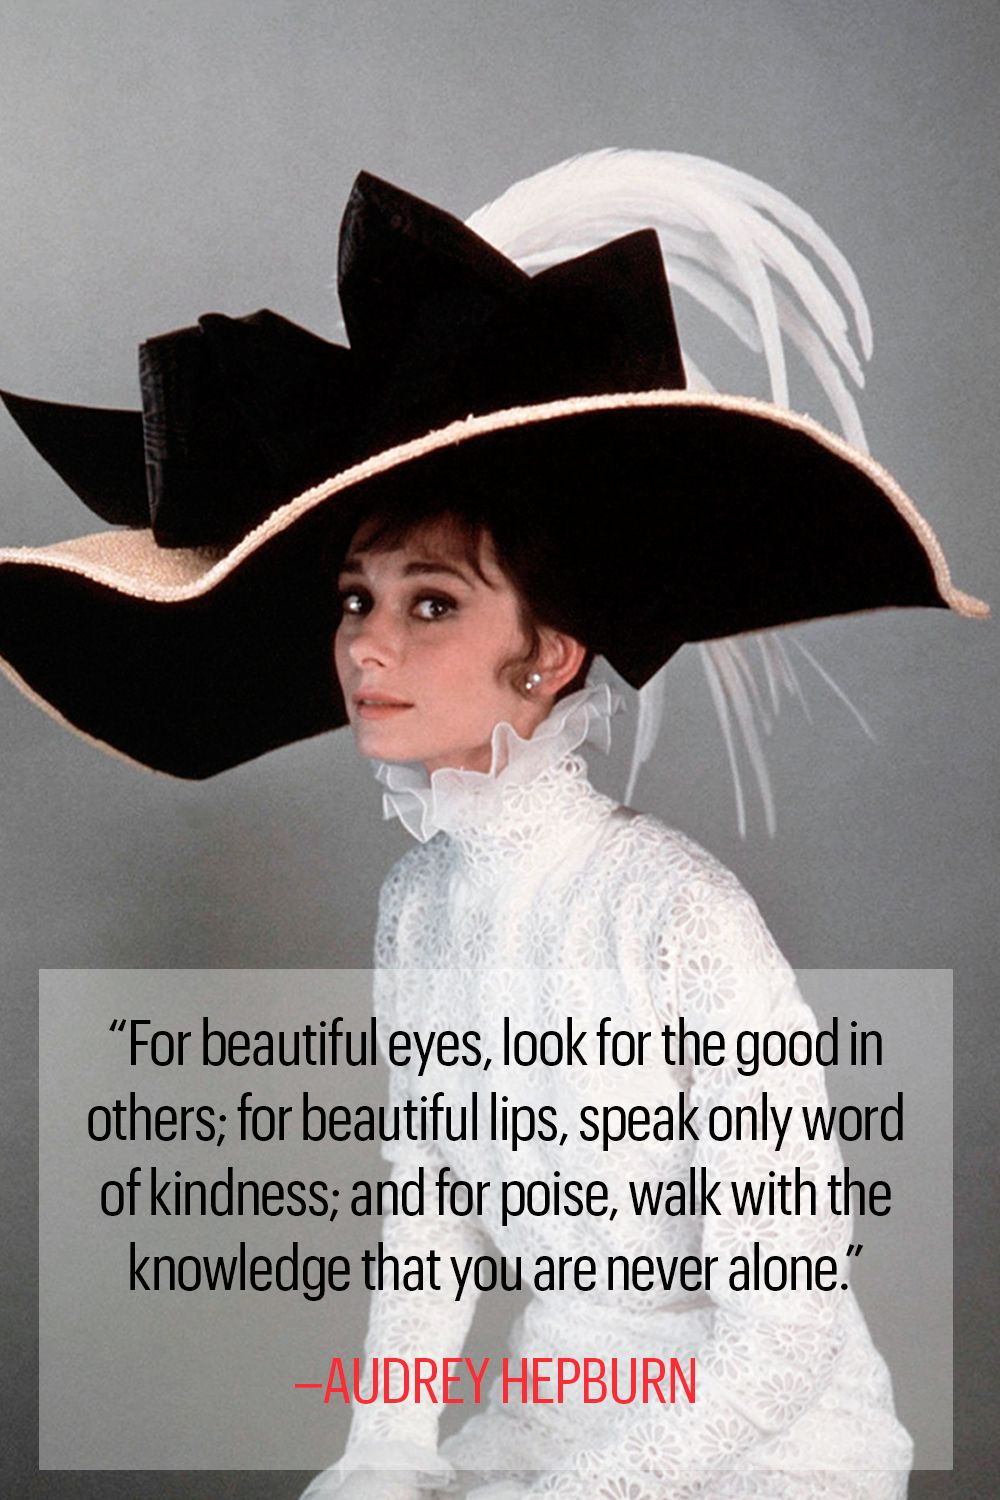 9060d03e7a47a 10 Classic Audrey Hepburn Quotes - Inspirational Words to Live By